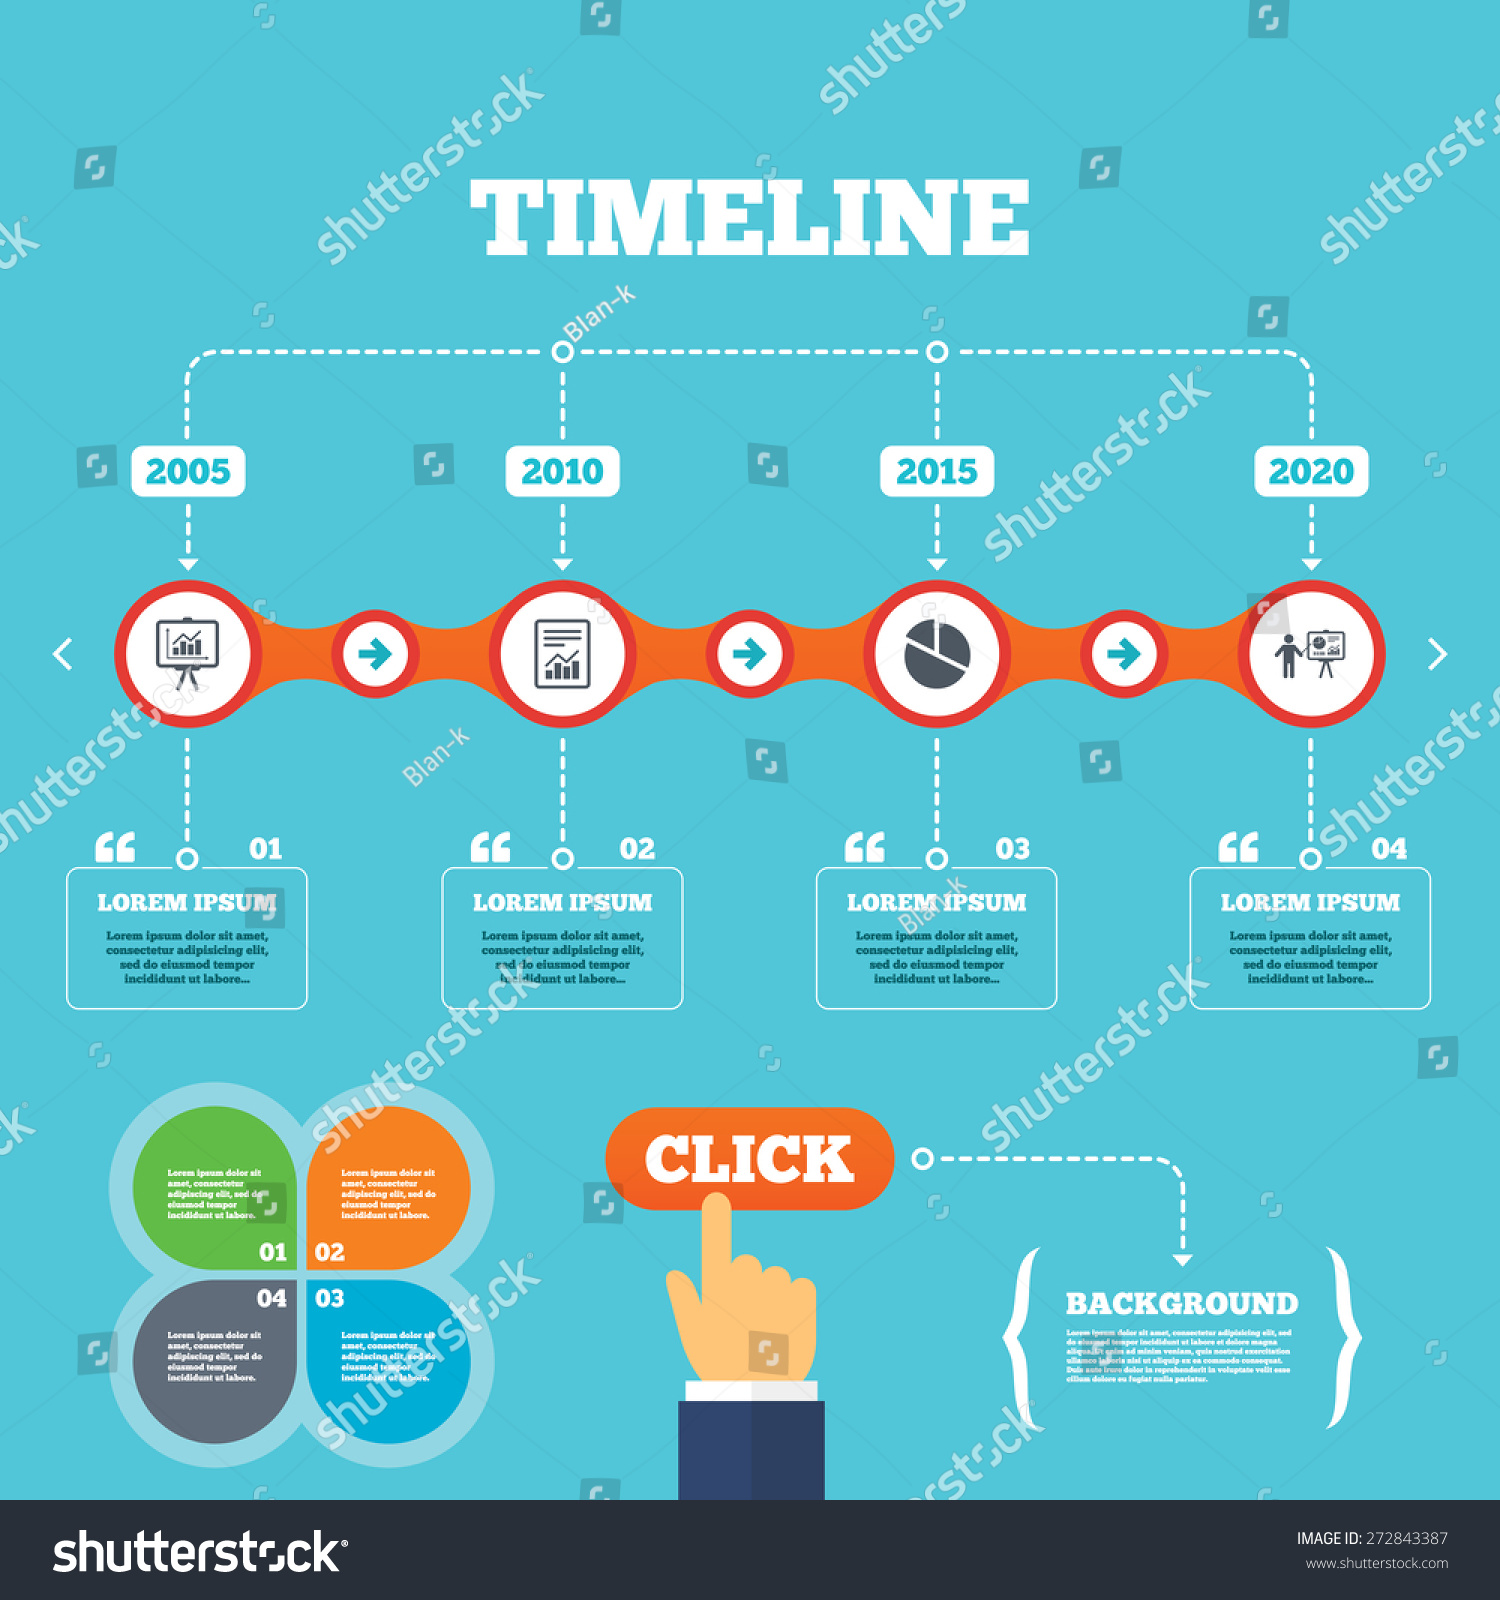 Timeline arrows quotes file document diagram stock vector 272843387 timeline with arrows and quotes file document with diagram pie chart icon presentation ccuart Images